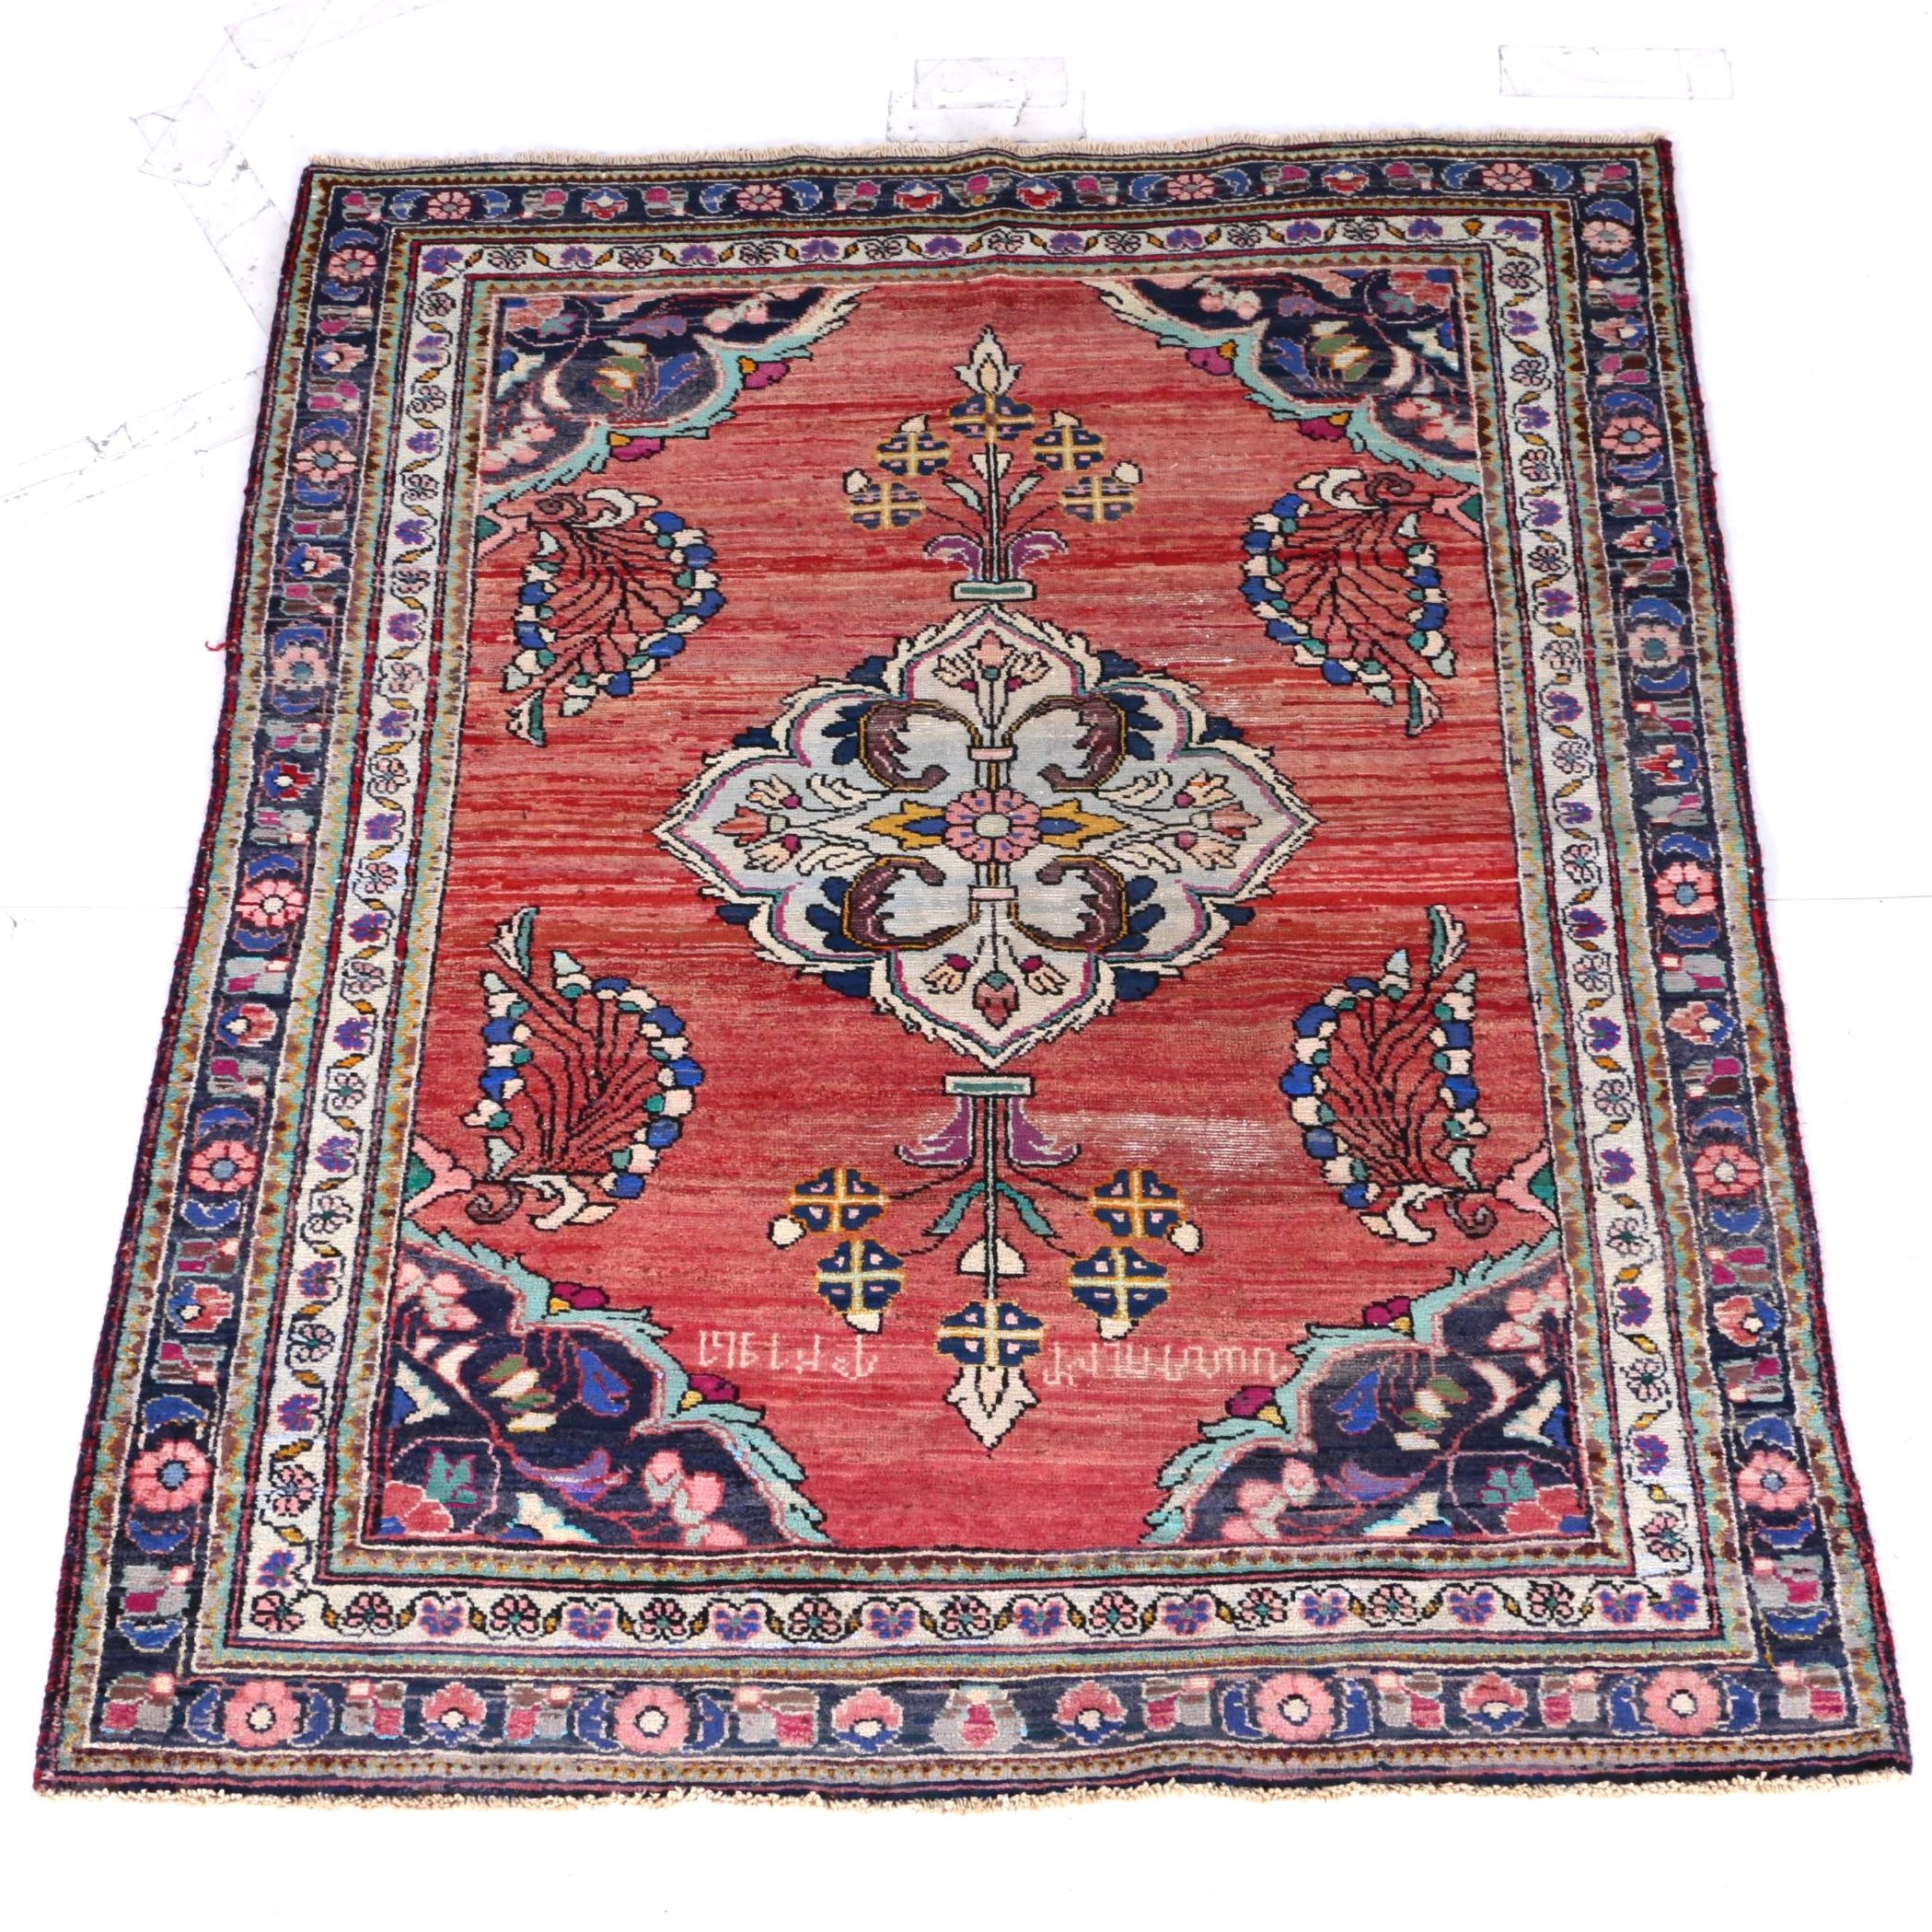 Semi-Antique Hand-Knotted Persian Armenian Area Rug with Inscription